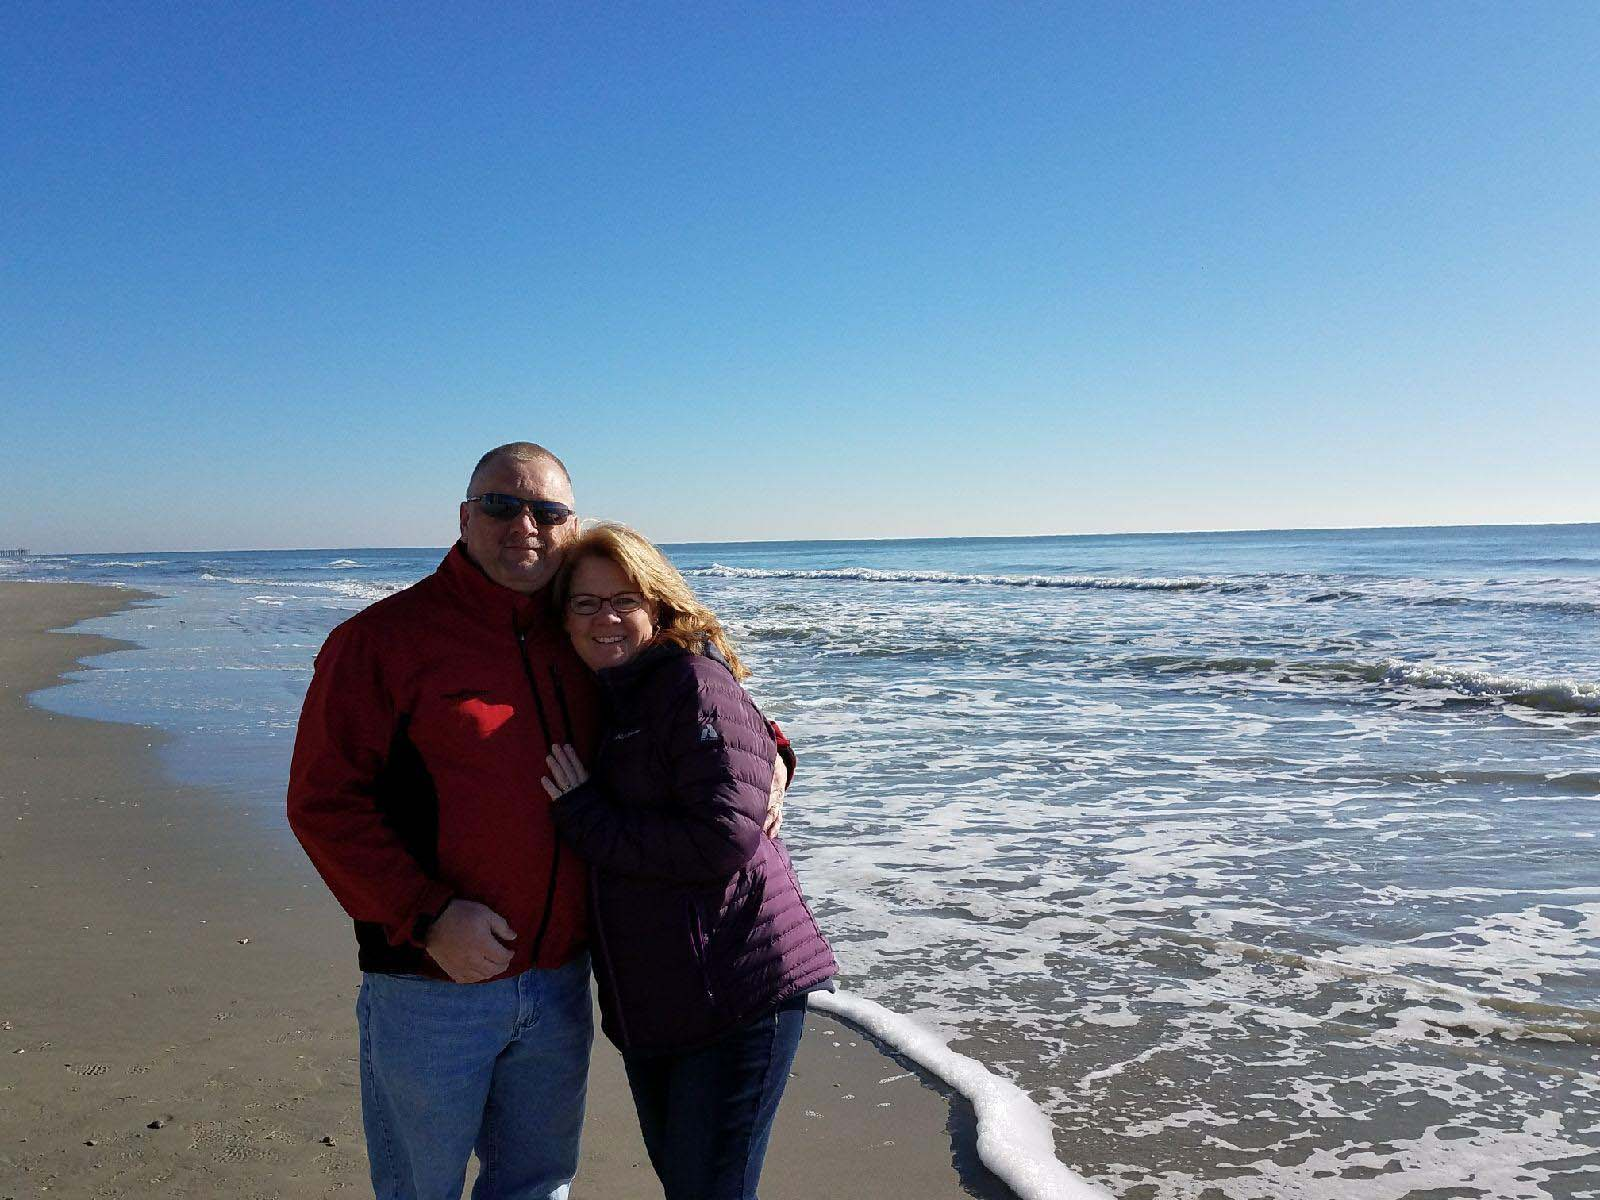 Couple hugging and posing on beach in winter